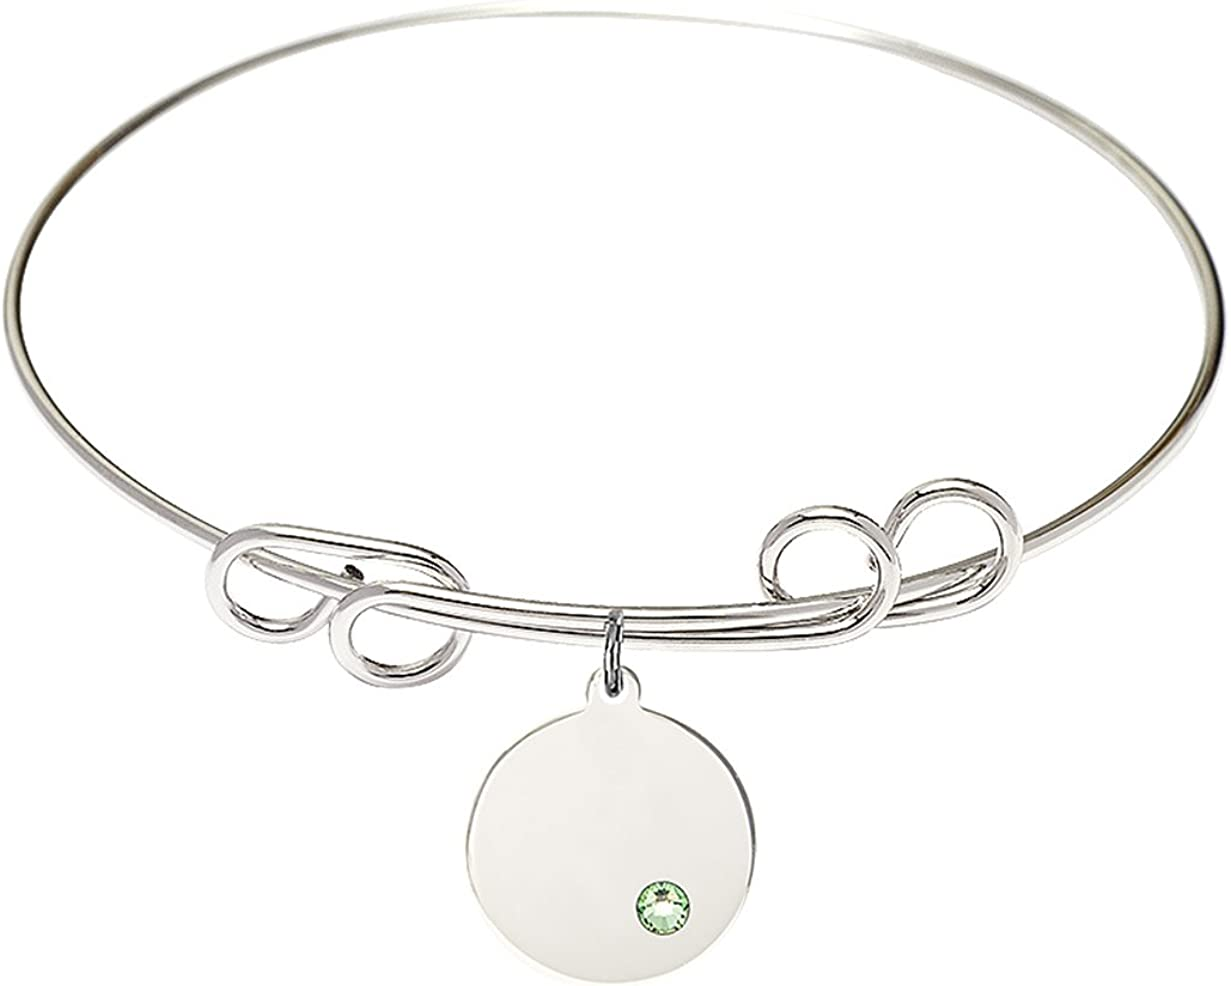 Same day shipping DiamondJewelryNY Dealing full price reduction Double Loop Bangle Bracelet with Plain a C Disc